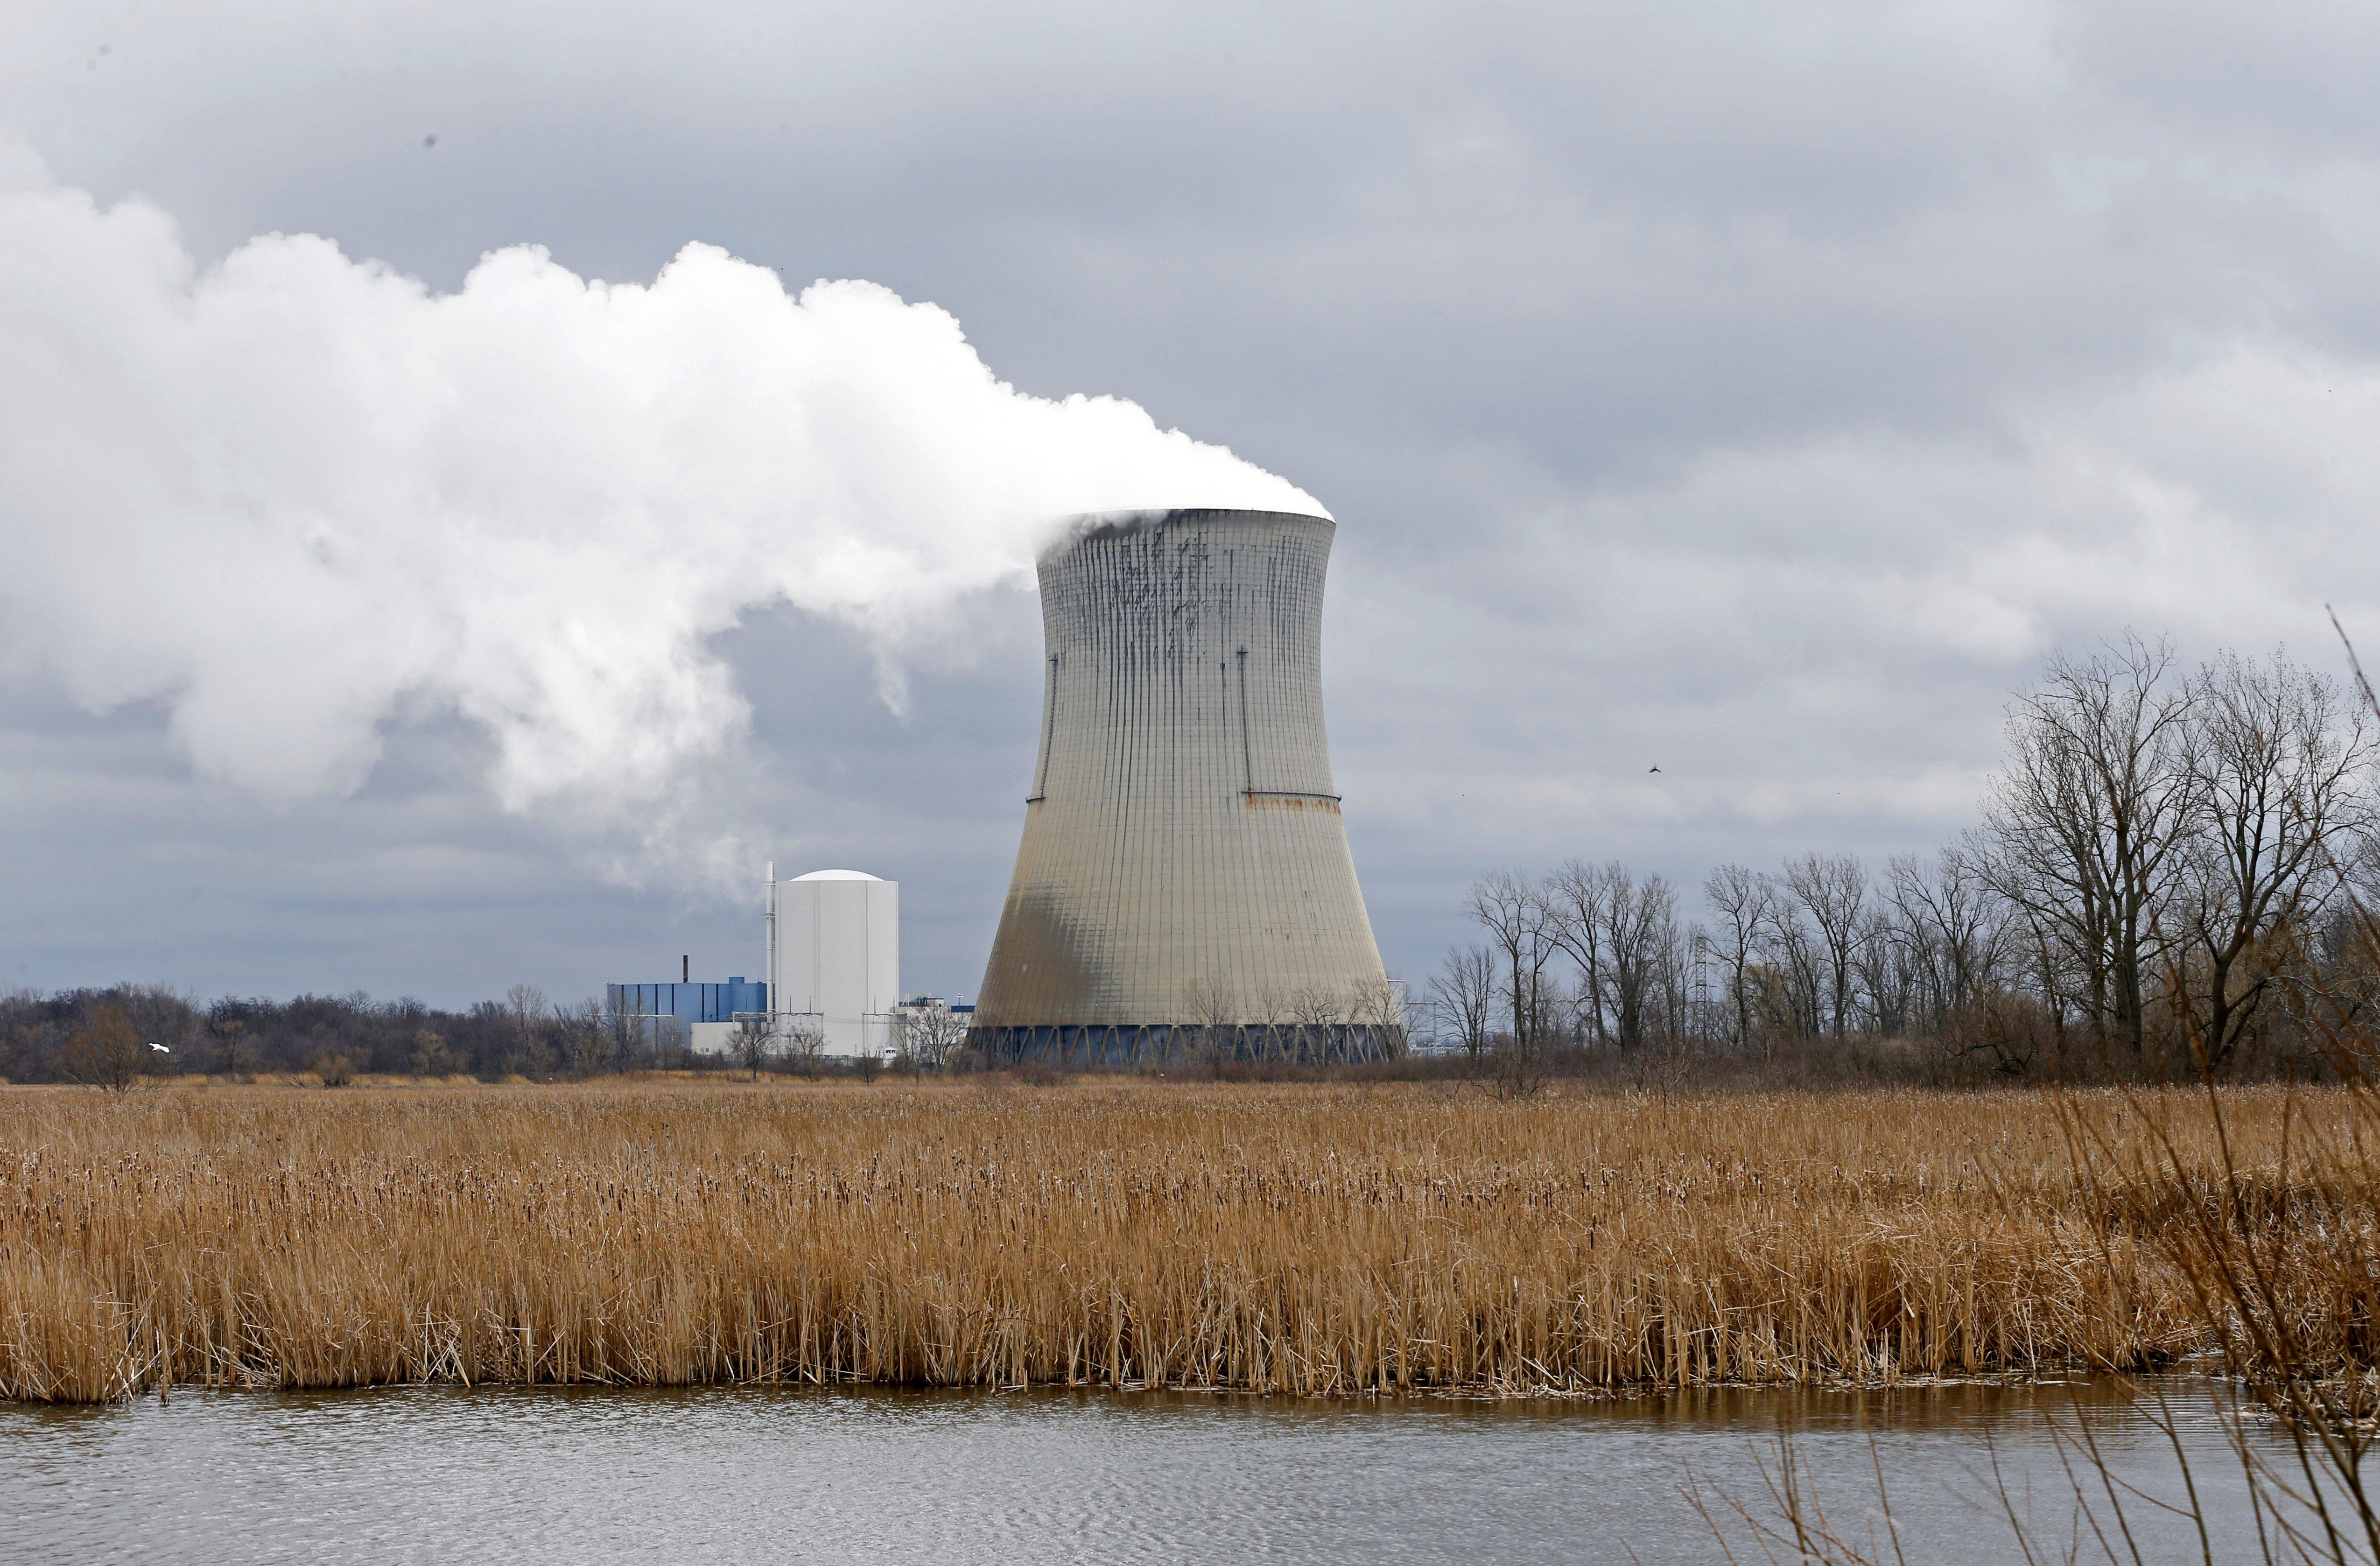 FirstEnergy Corp.'s Davis-Besse Nuclear Power Station in Oak Harbor, Ohio